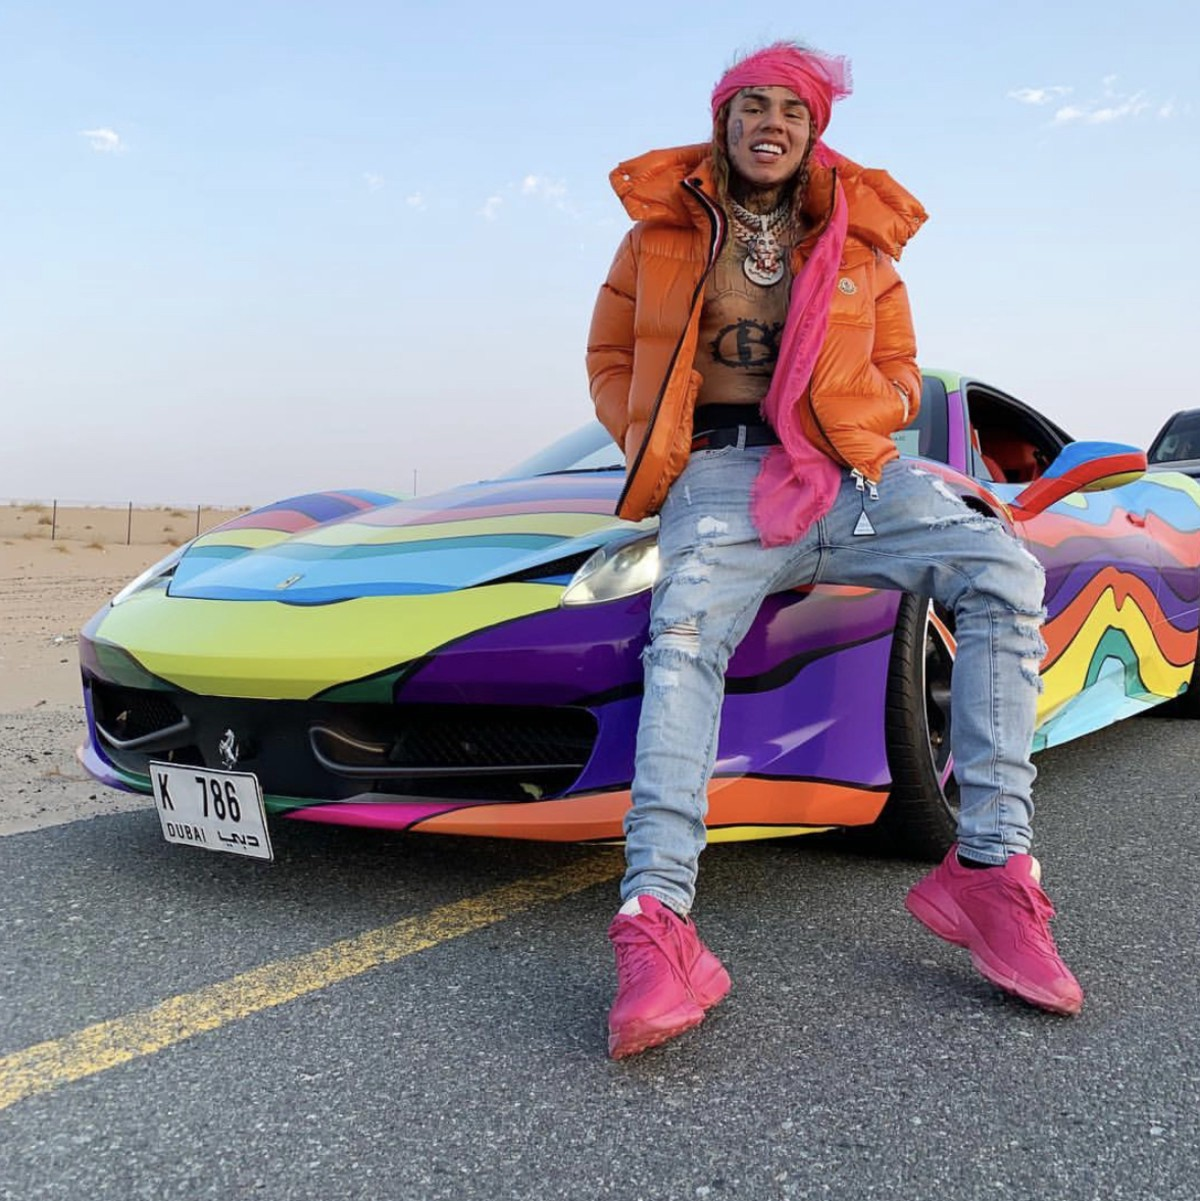 On the Inauthenticity of Hip-Hop, Tekashi 69 and the Impact